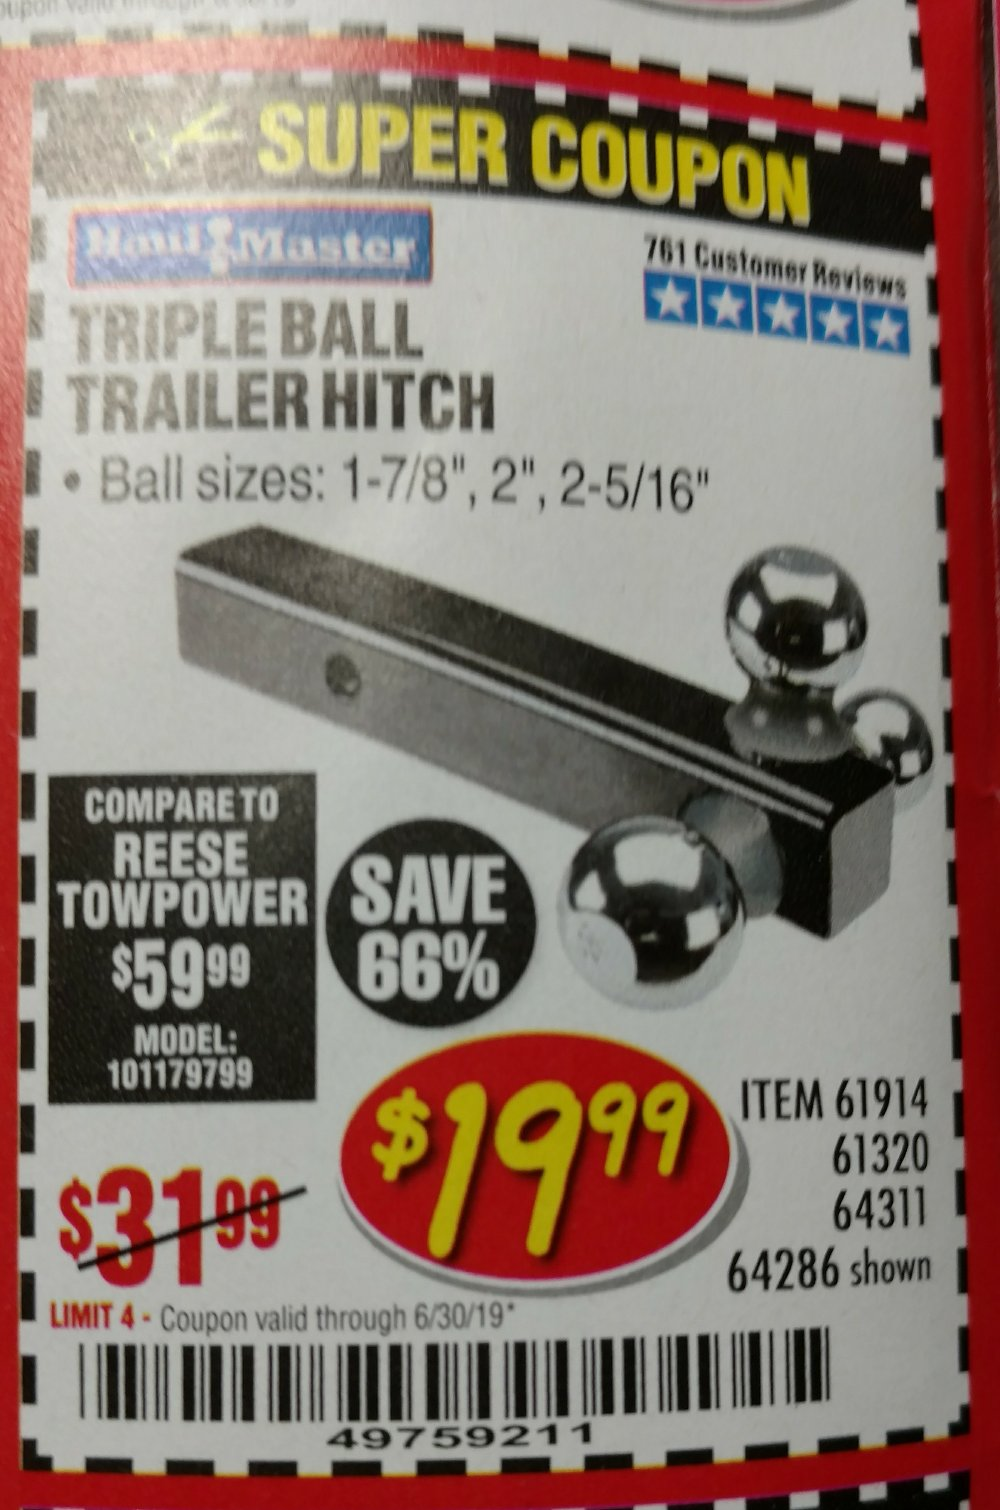 Harbor Freight Coupon, HF Coupons - Triple Ball Trailer Hitch